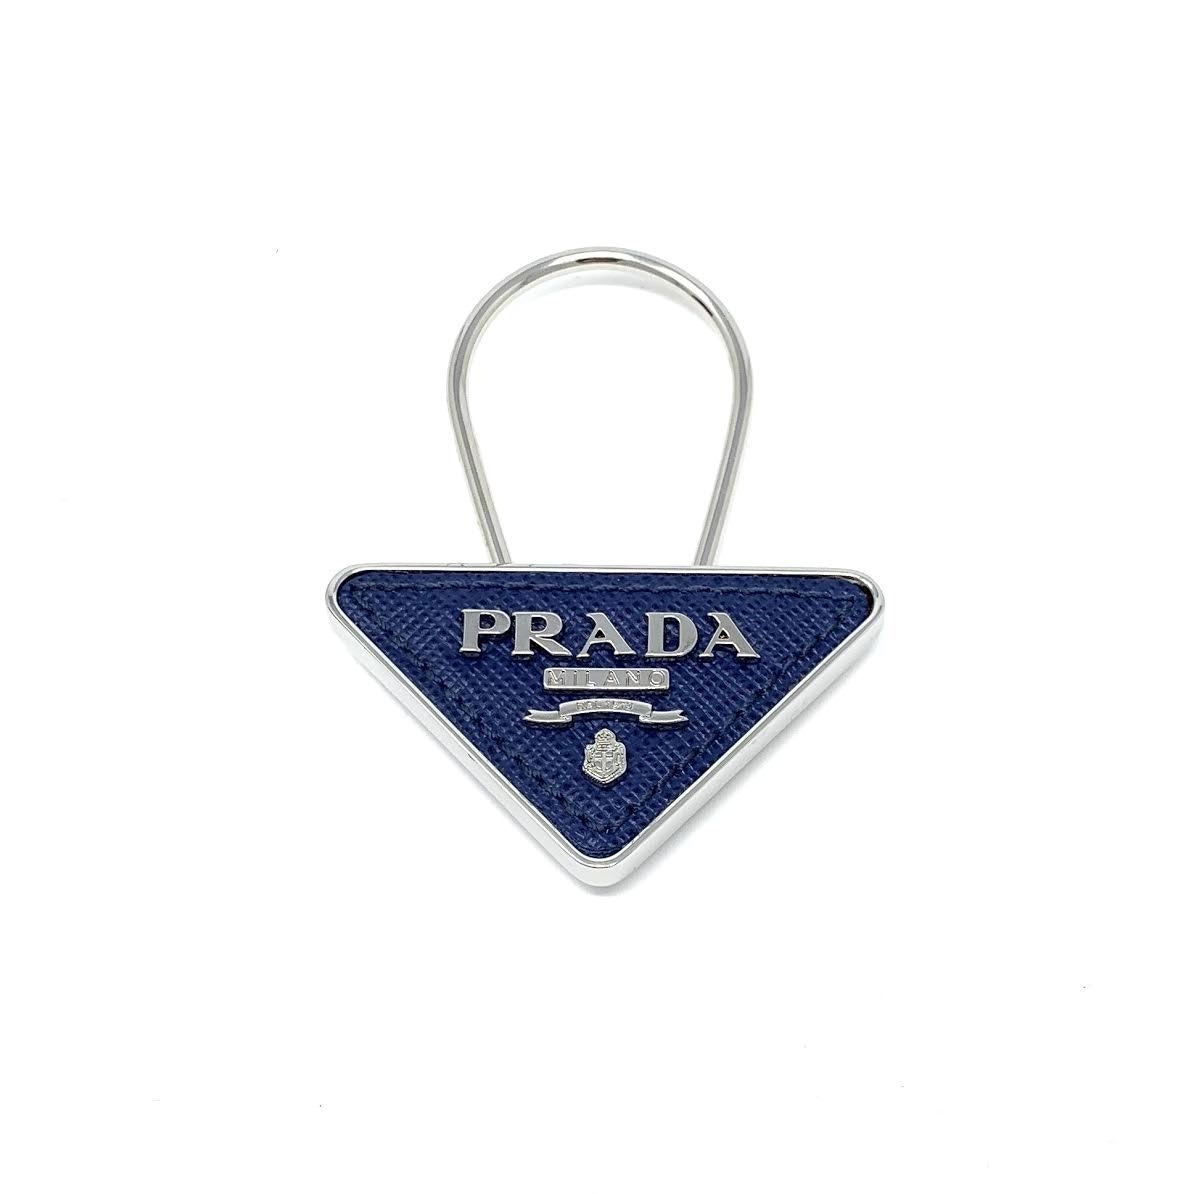 Prada Key Chain Blue